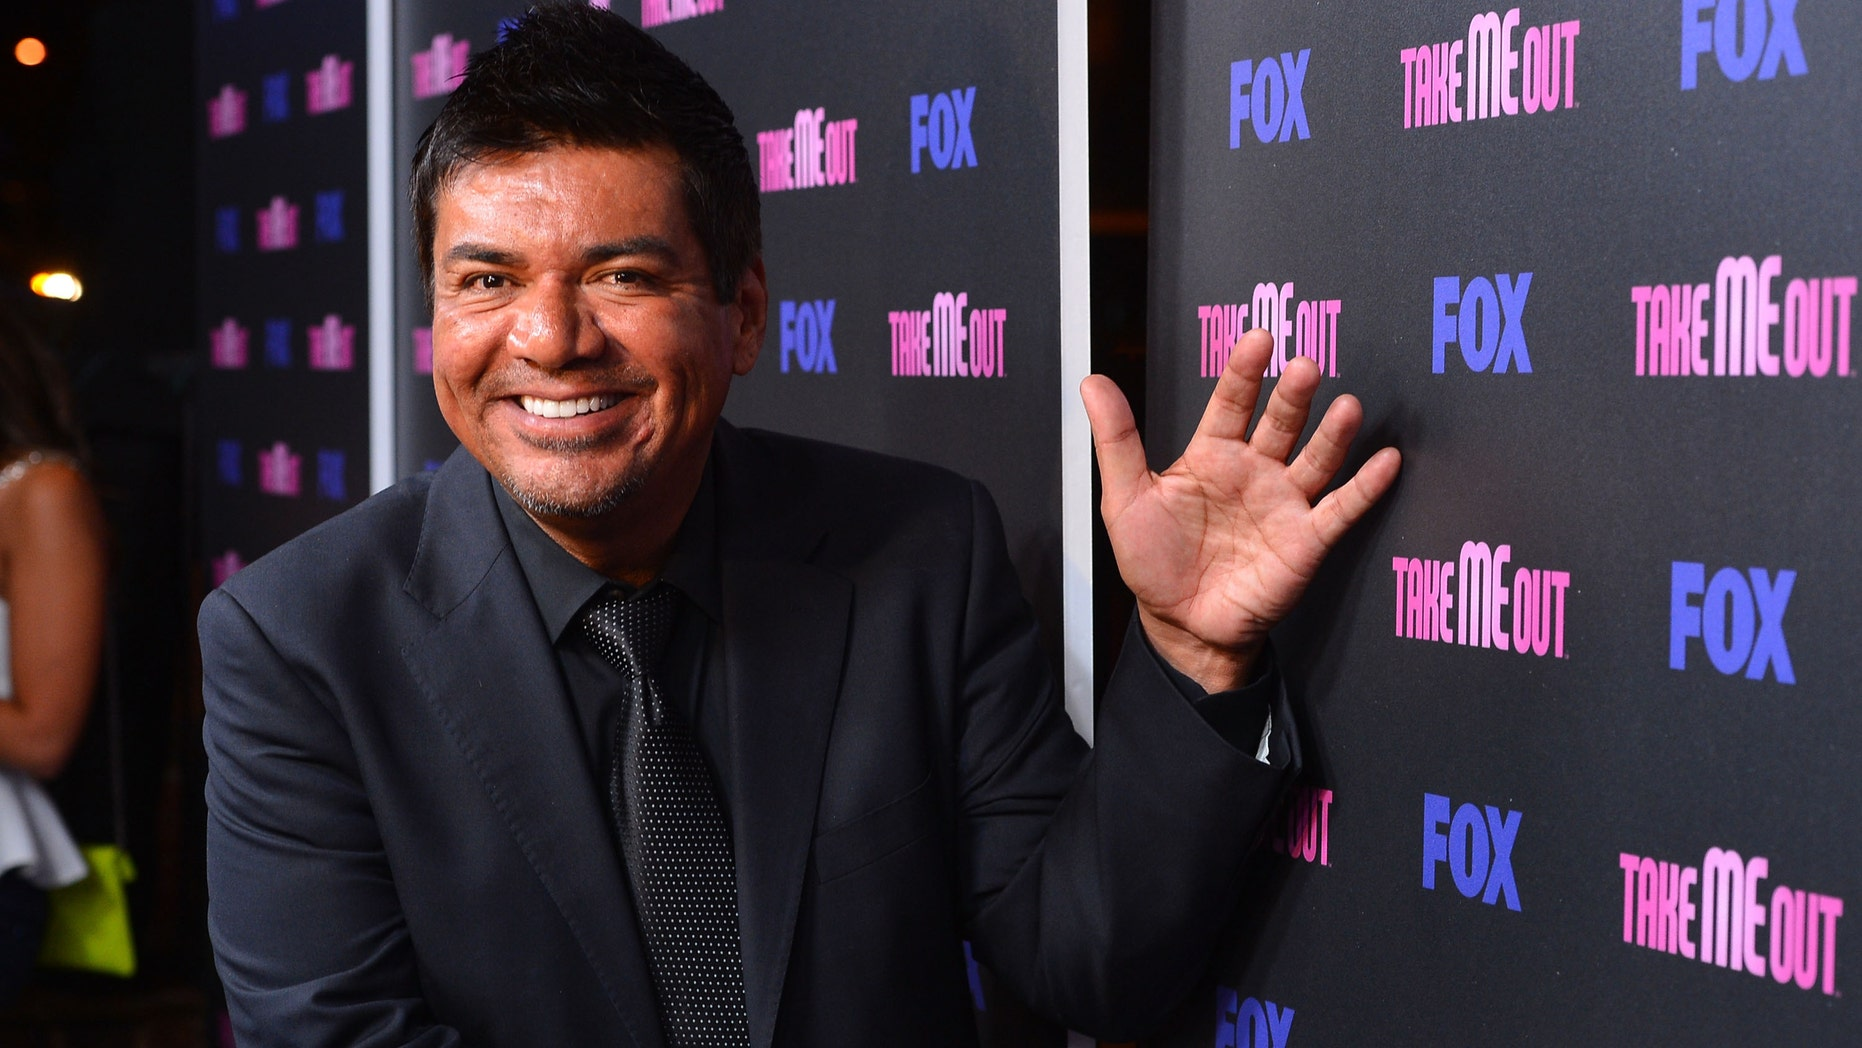 """LOS ANGELES, CA - JUNE 05:  Actor George Lopez arrives at Fox's """"Take Me Out"""" Speed Dating Event at South Restaurant & Bar on June 5, 2012 in Los Angeles, California.  (Photo by Frazer Harrison/Getty Images)"""